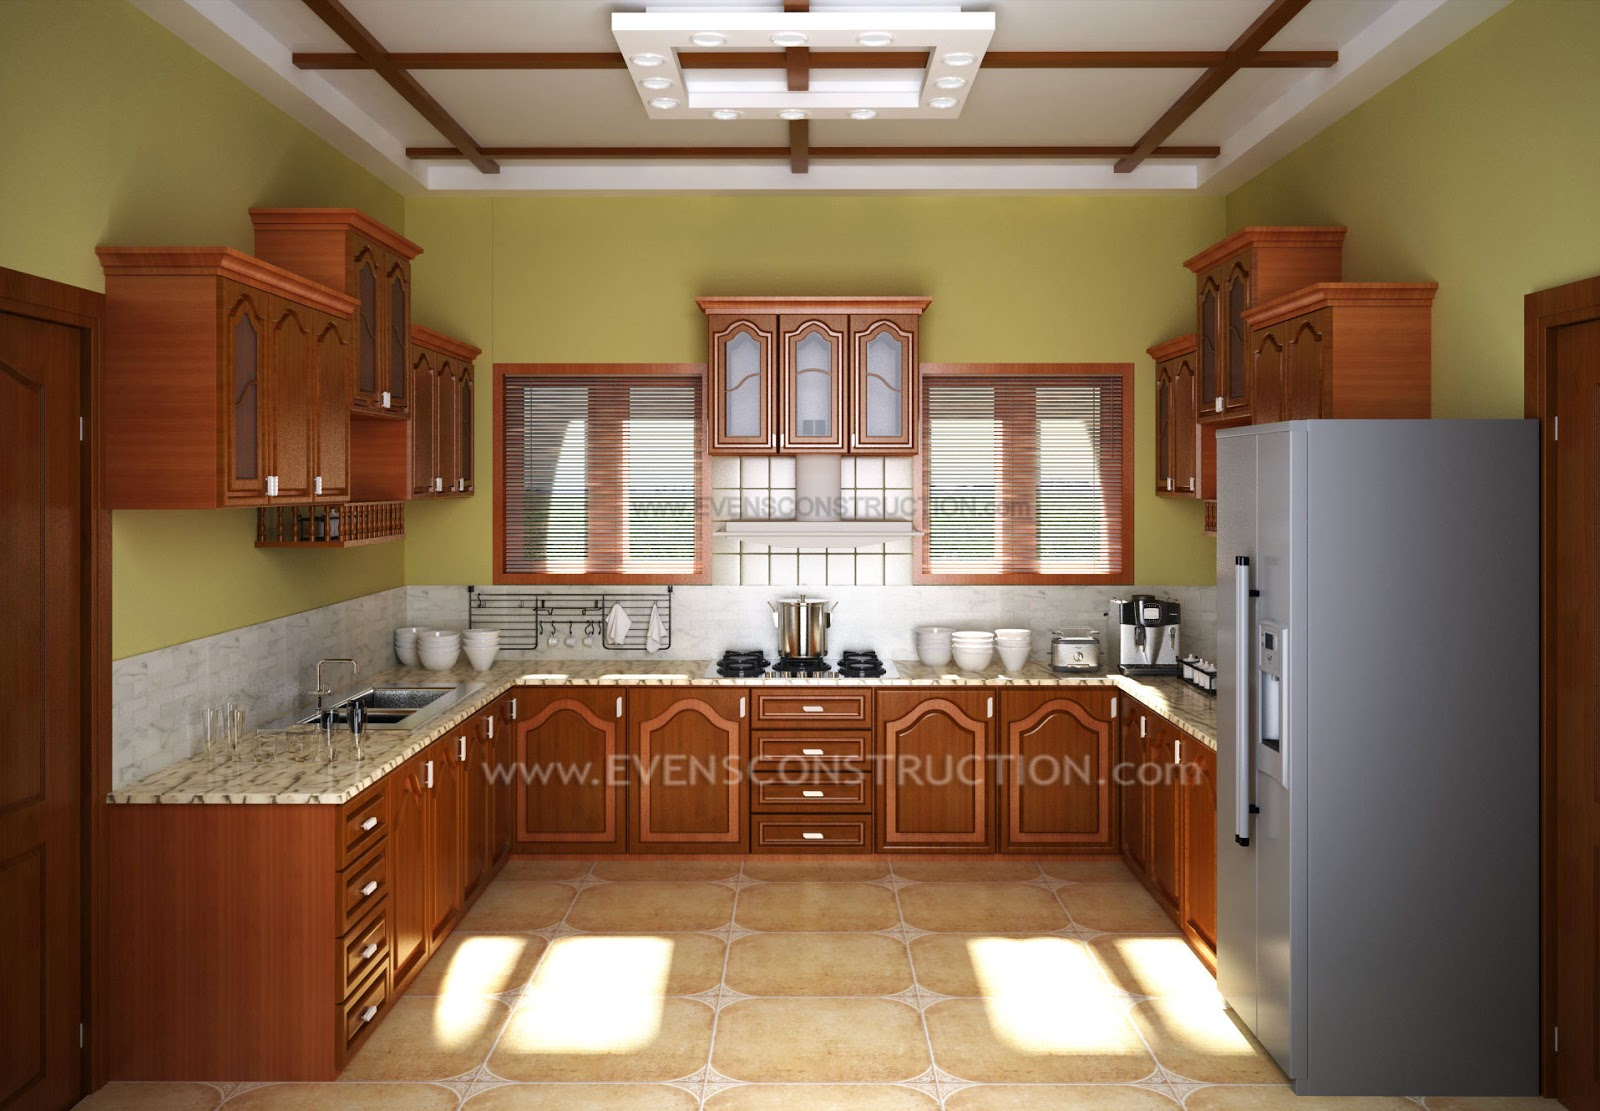 Evens construction pvt ltd kerala kitchen with wooden for Interior designs cupboards